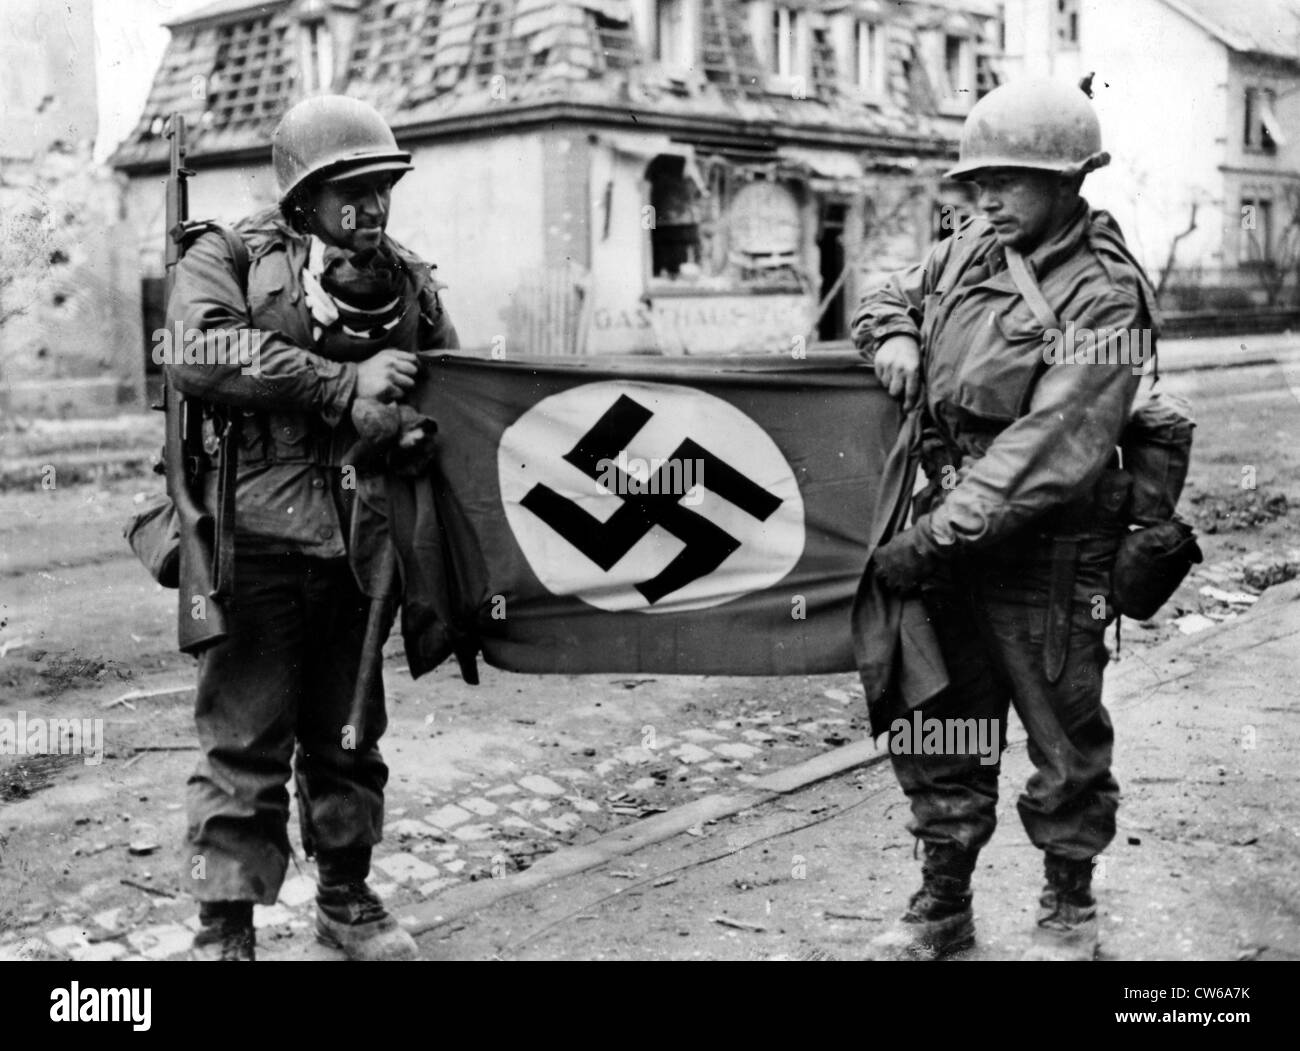 U.S soldiers show Nazi flag found in Haguenau (France) December 10,1944 Stock Photo